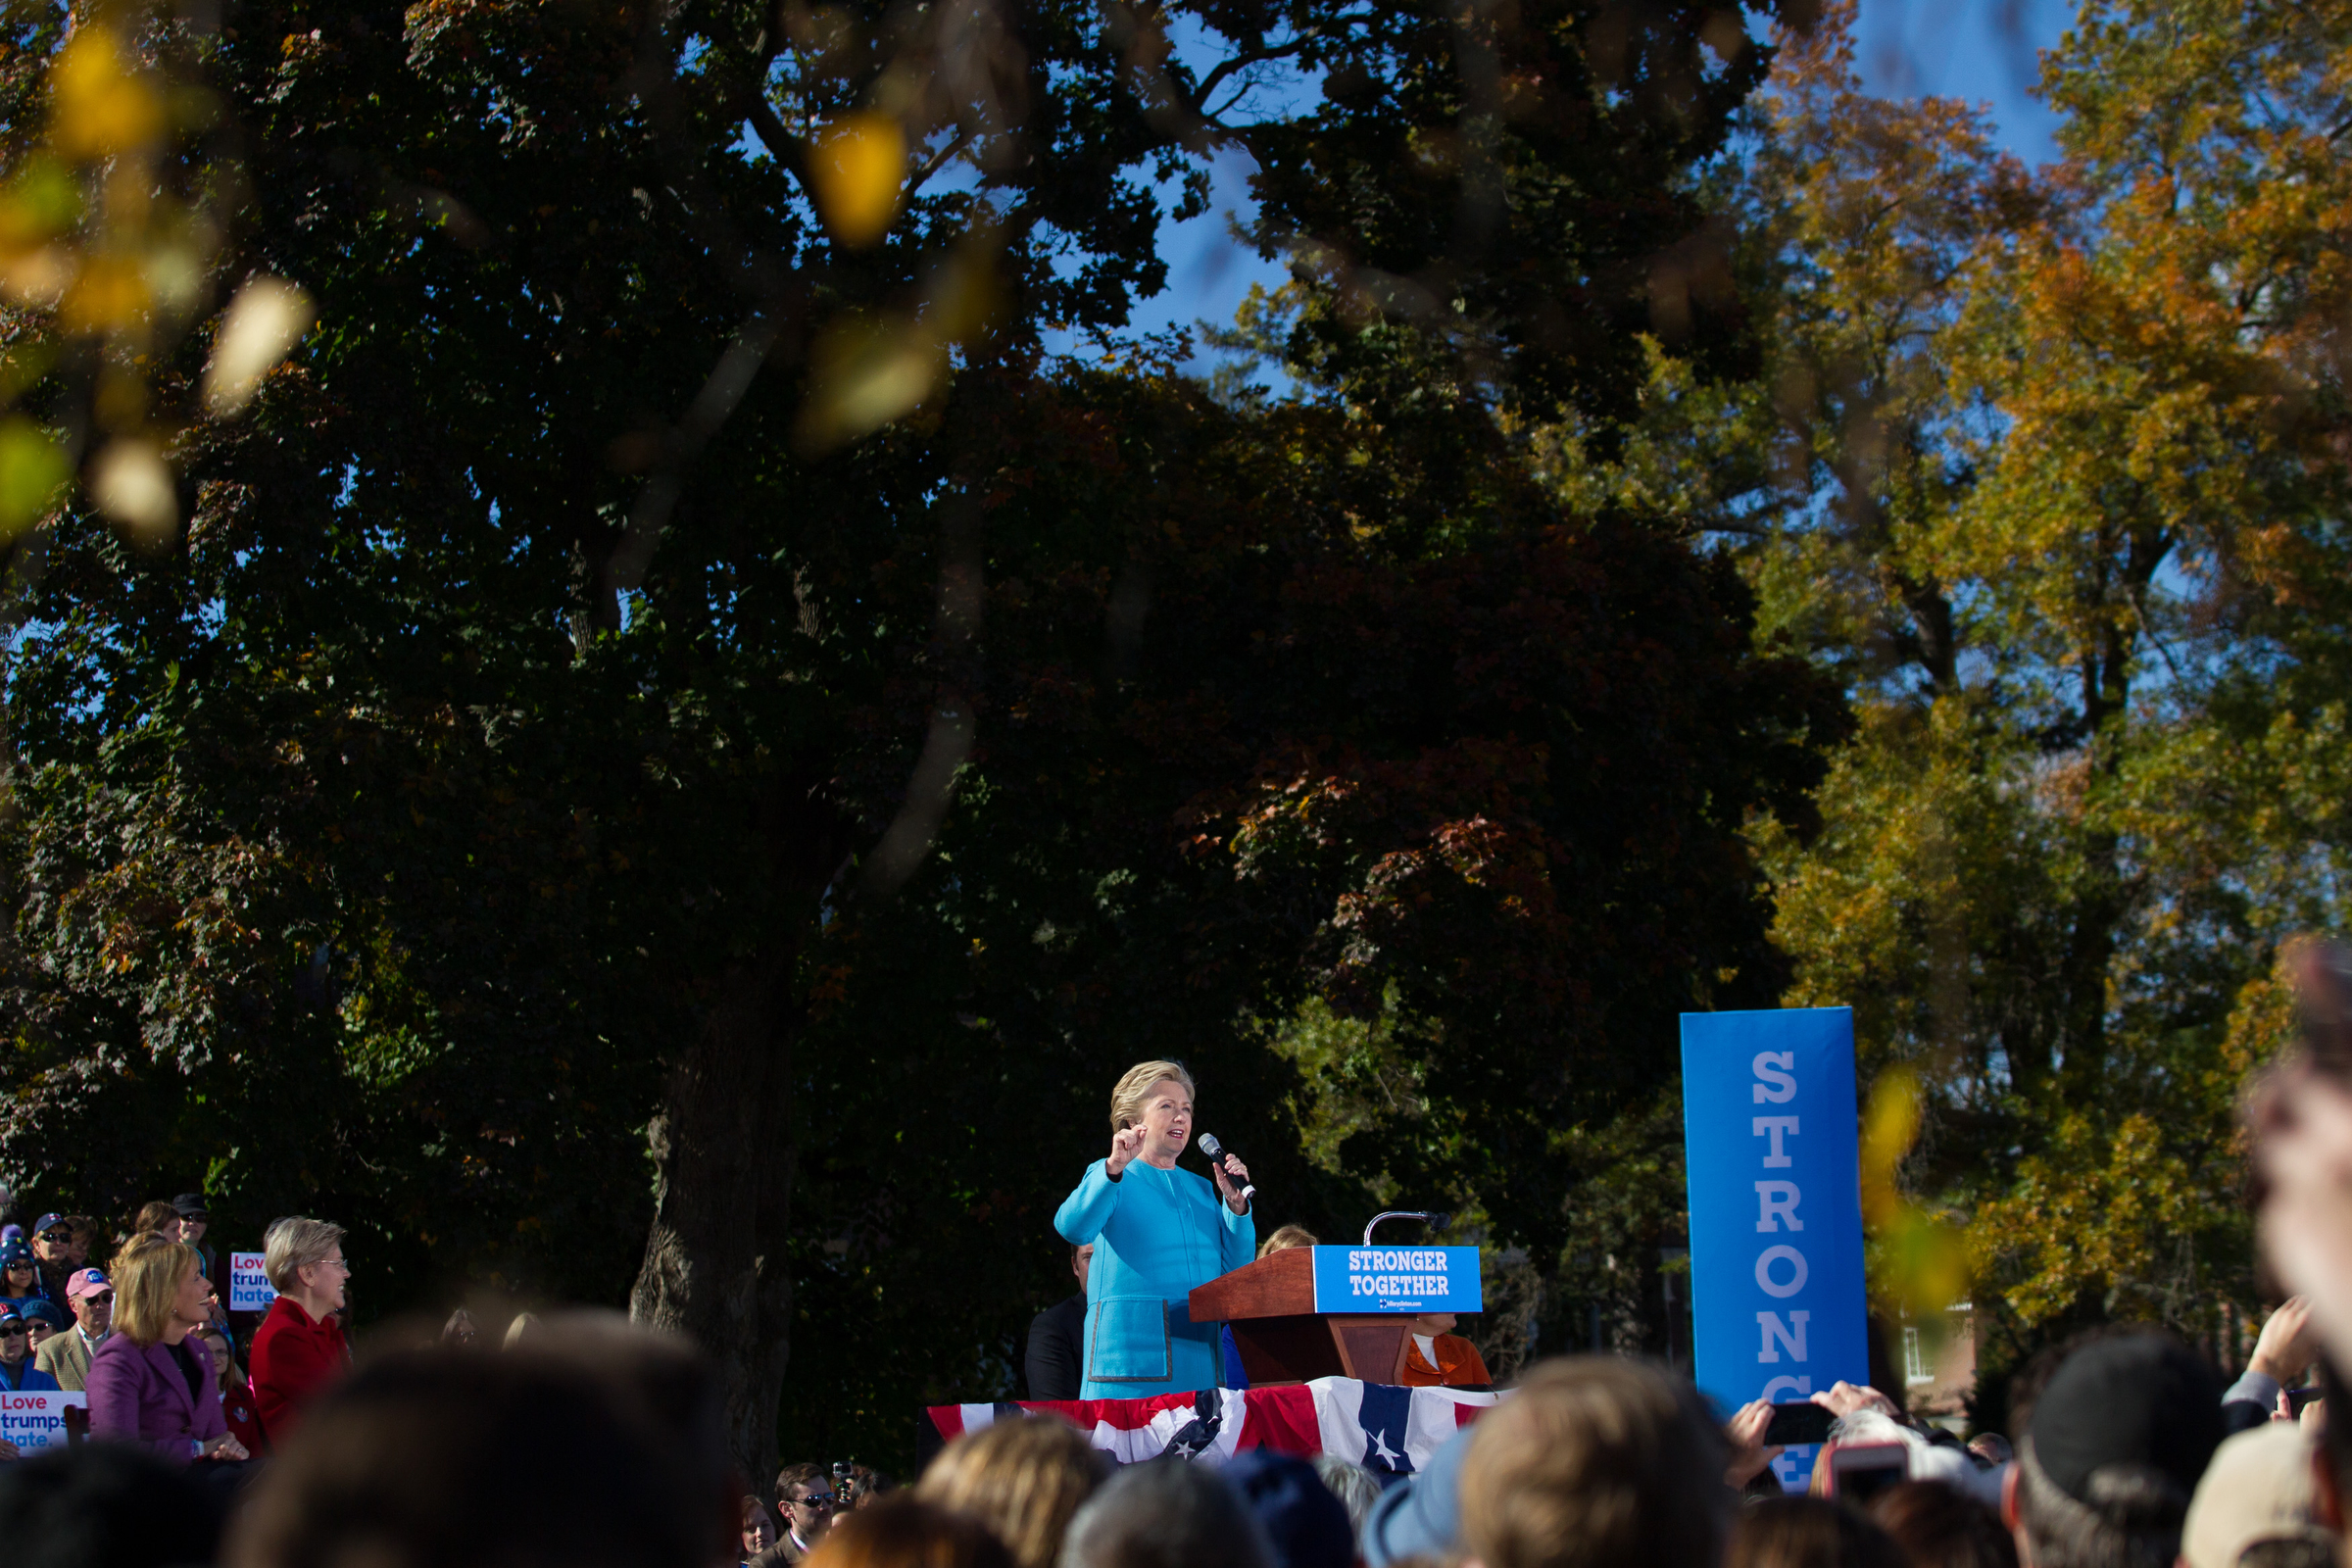 Democratic presidential nominee Hillary Clinton speaks at a campaign rally at Saint Anselm College in Goffstown, New Hampshire on October 24, 2016.